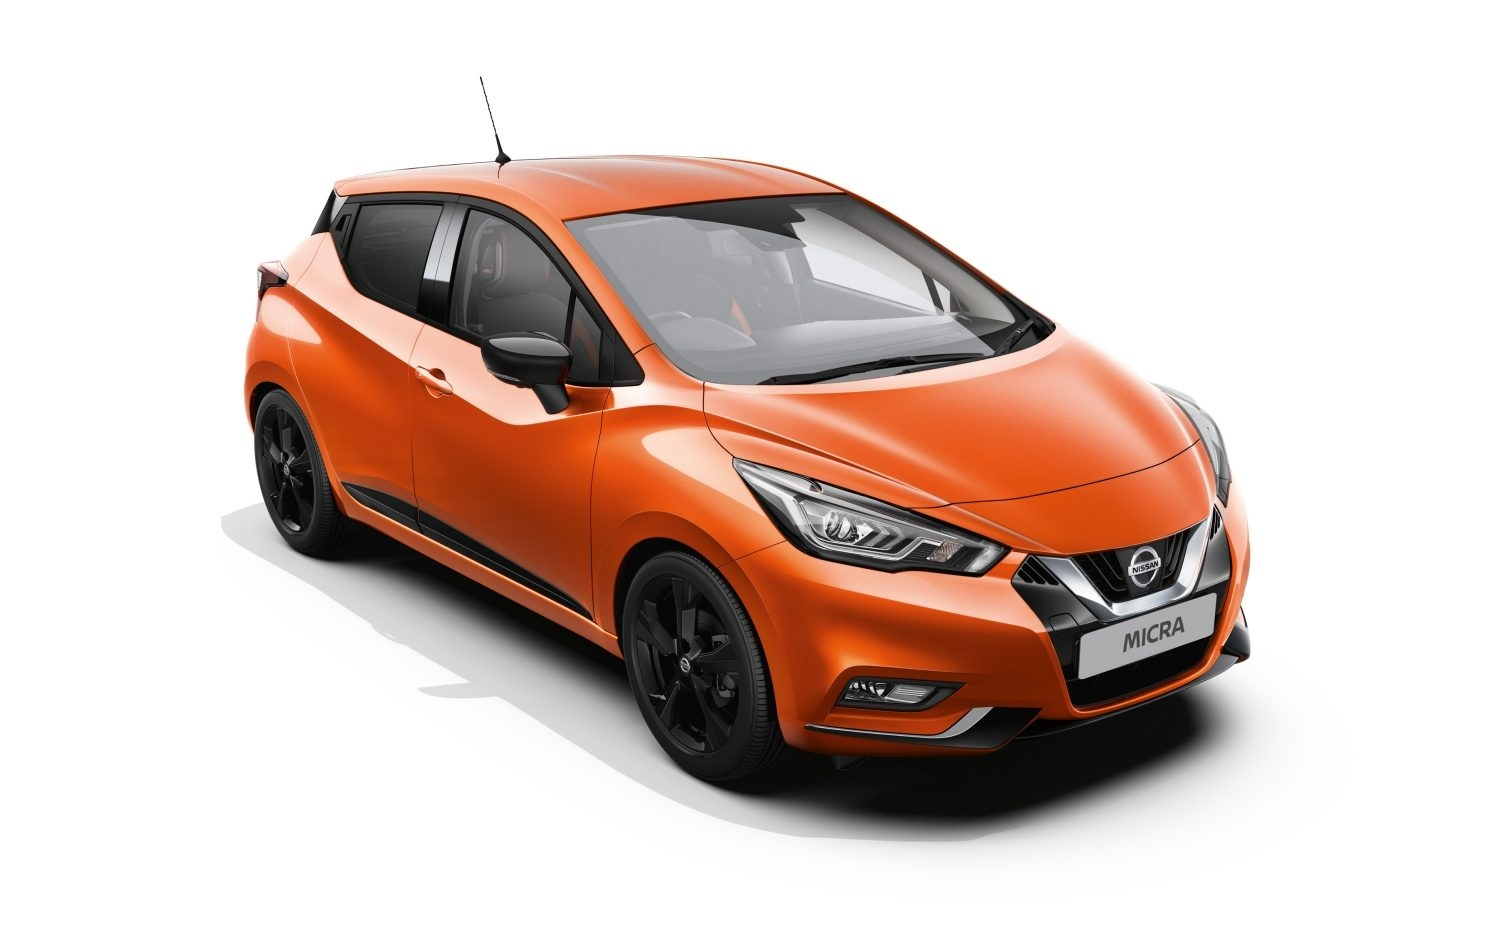 48 The 2020 Nissan Micra Price